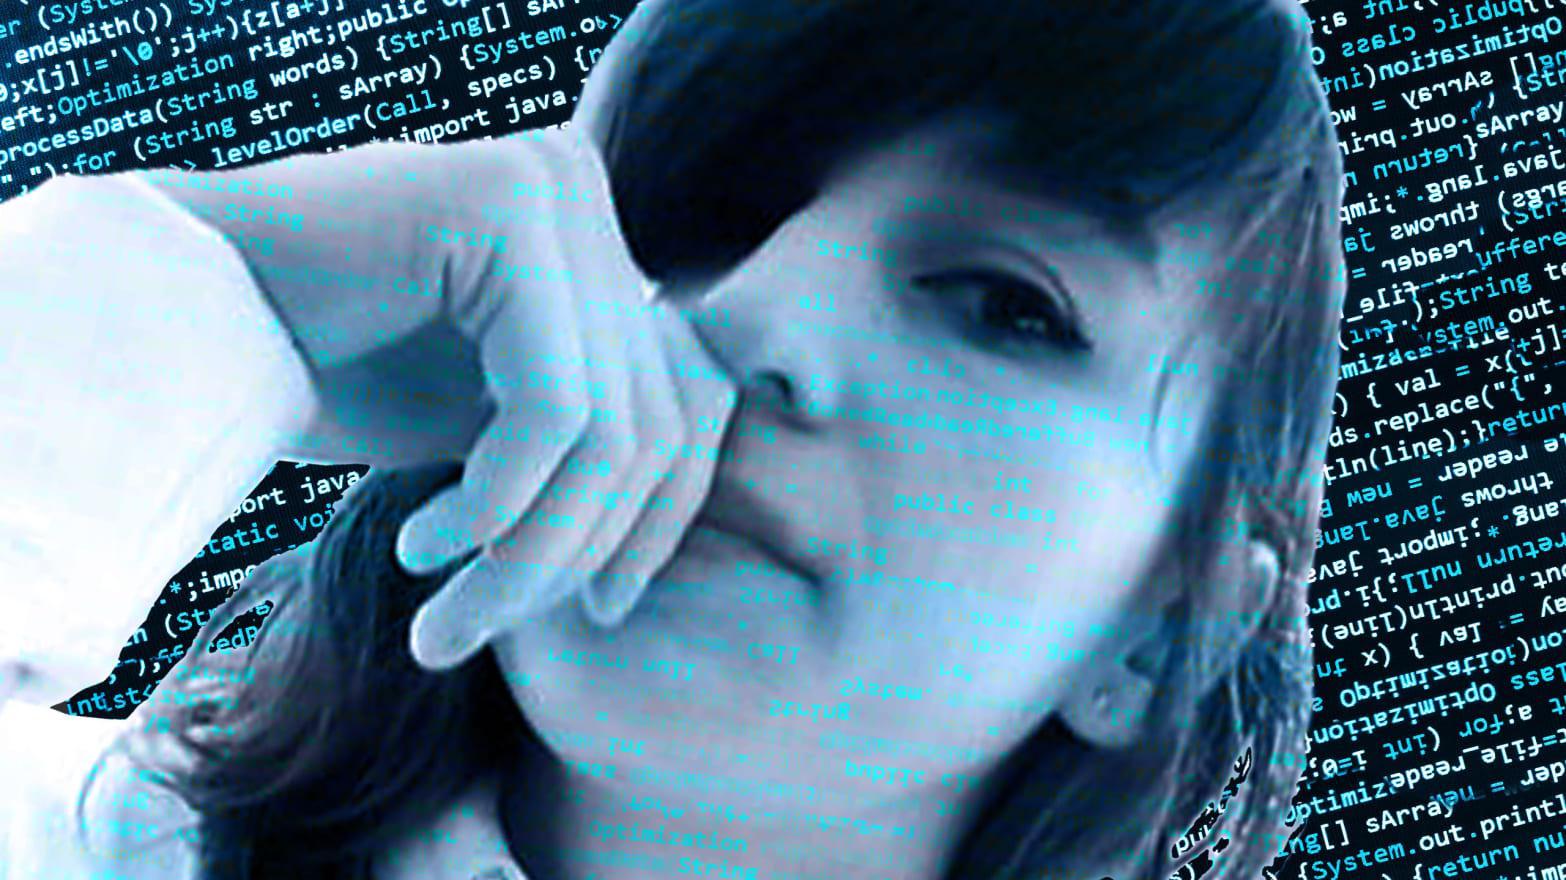 Did This Mysterious Female Hacker Help Crack the DNC?